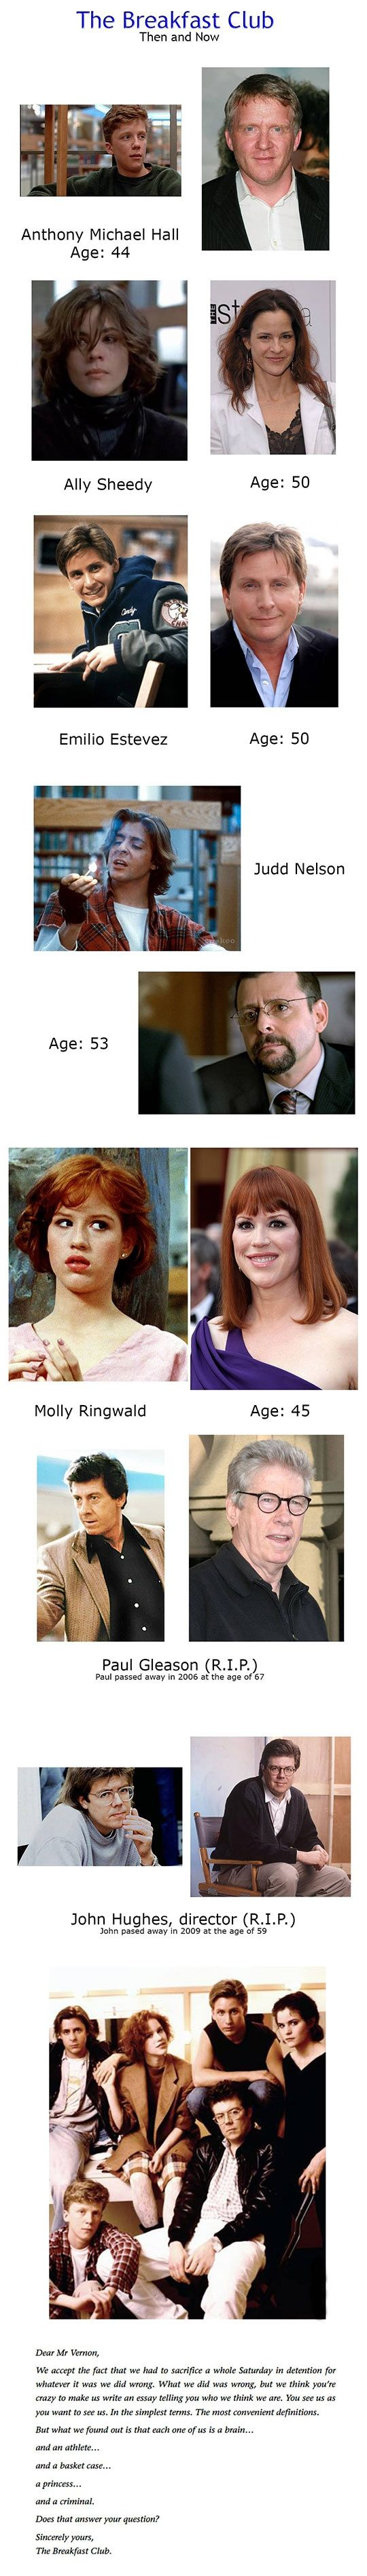 004 The Breakfast Club Then and Now.